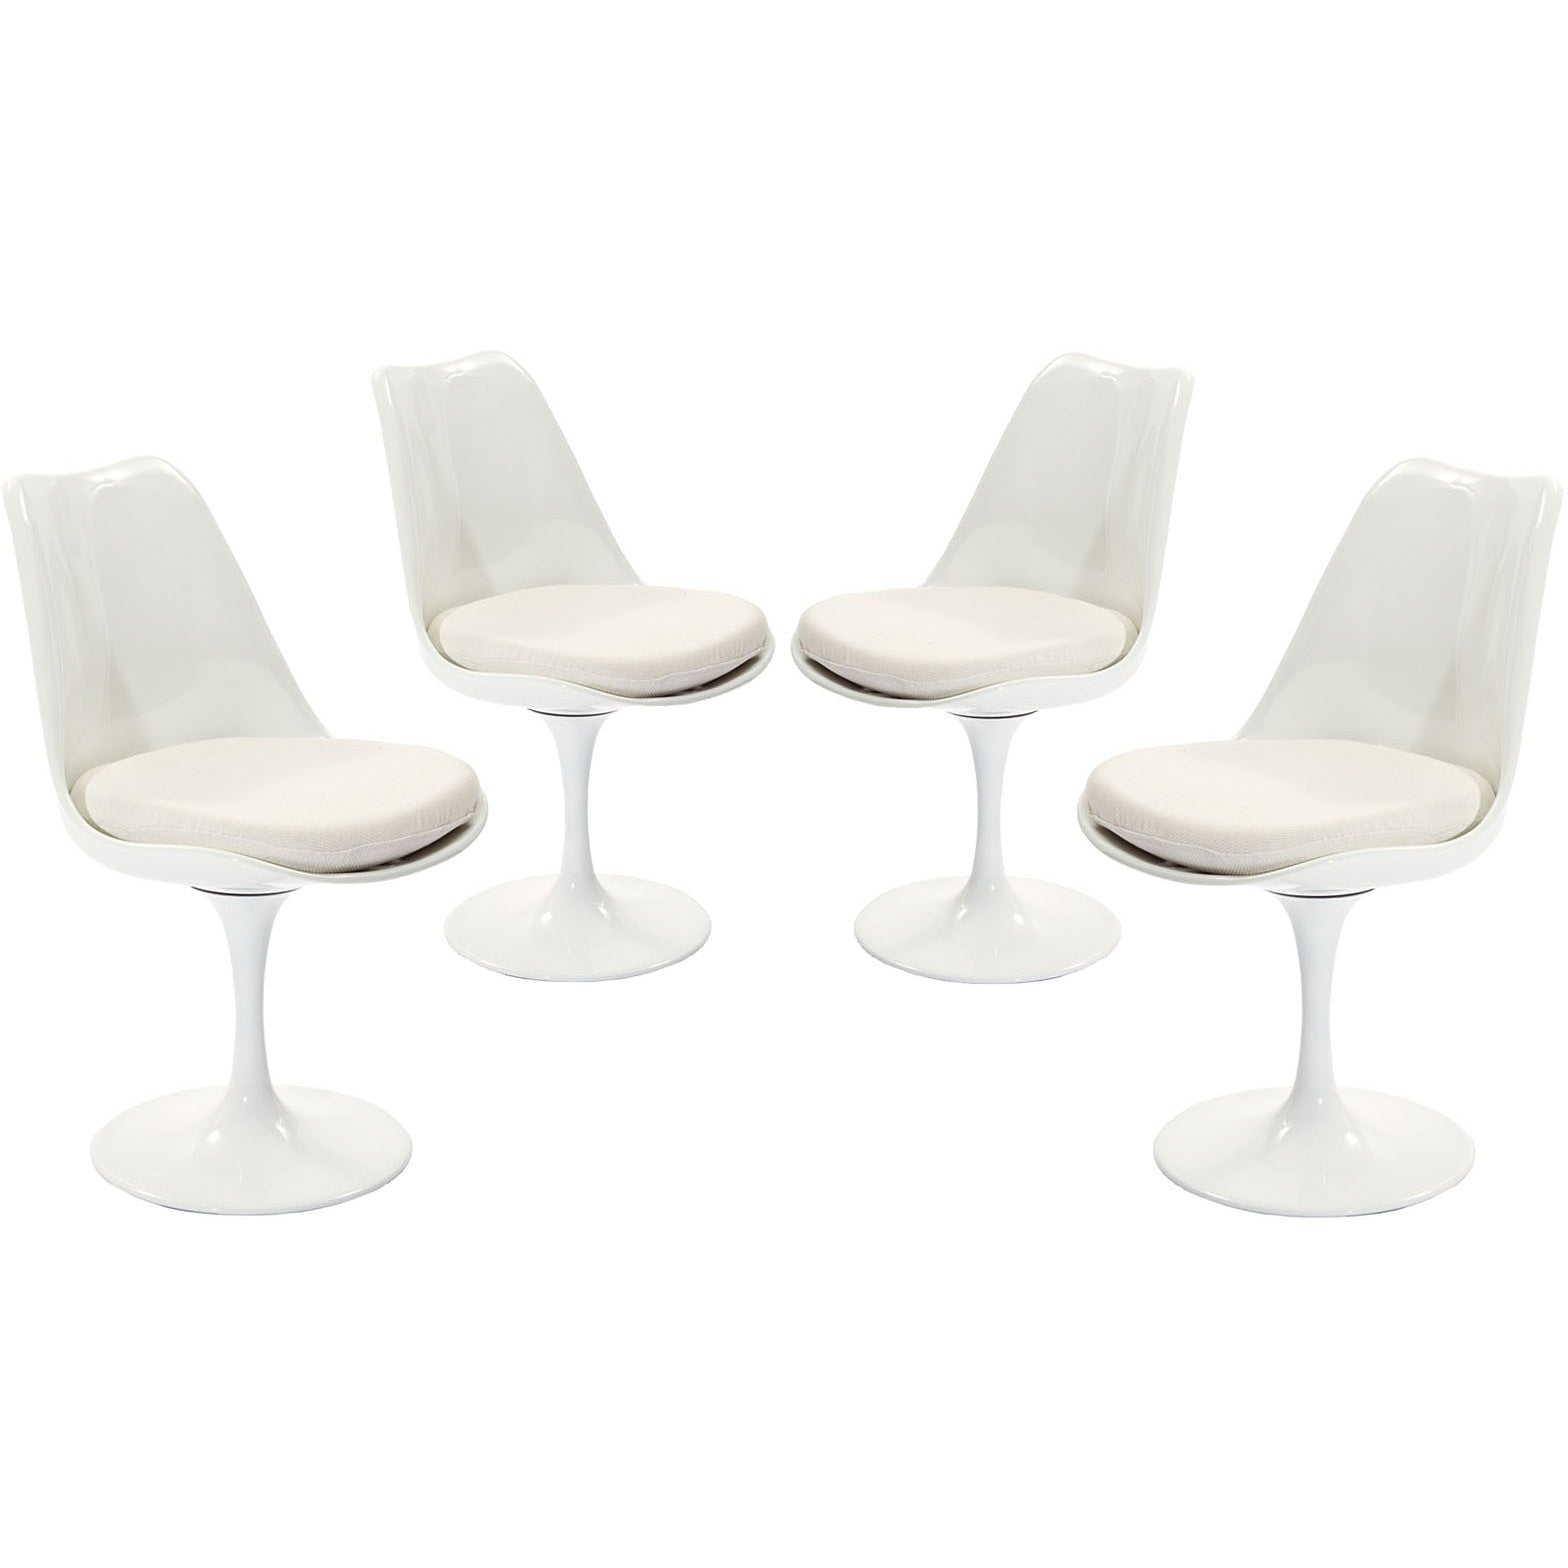 Lippa Dining Side Chair Fabric Set of 4 - White